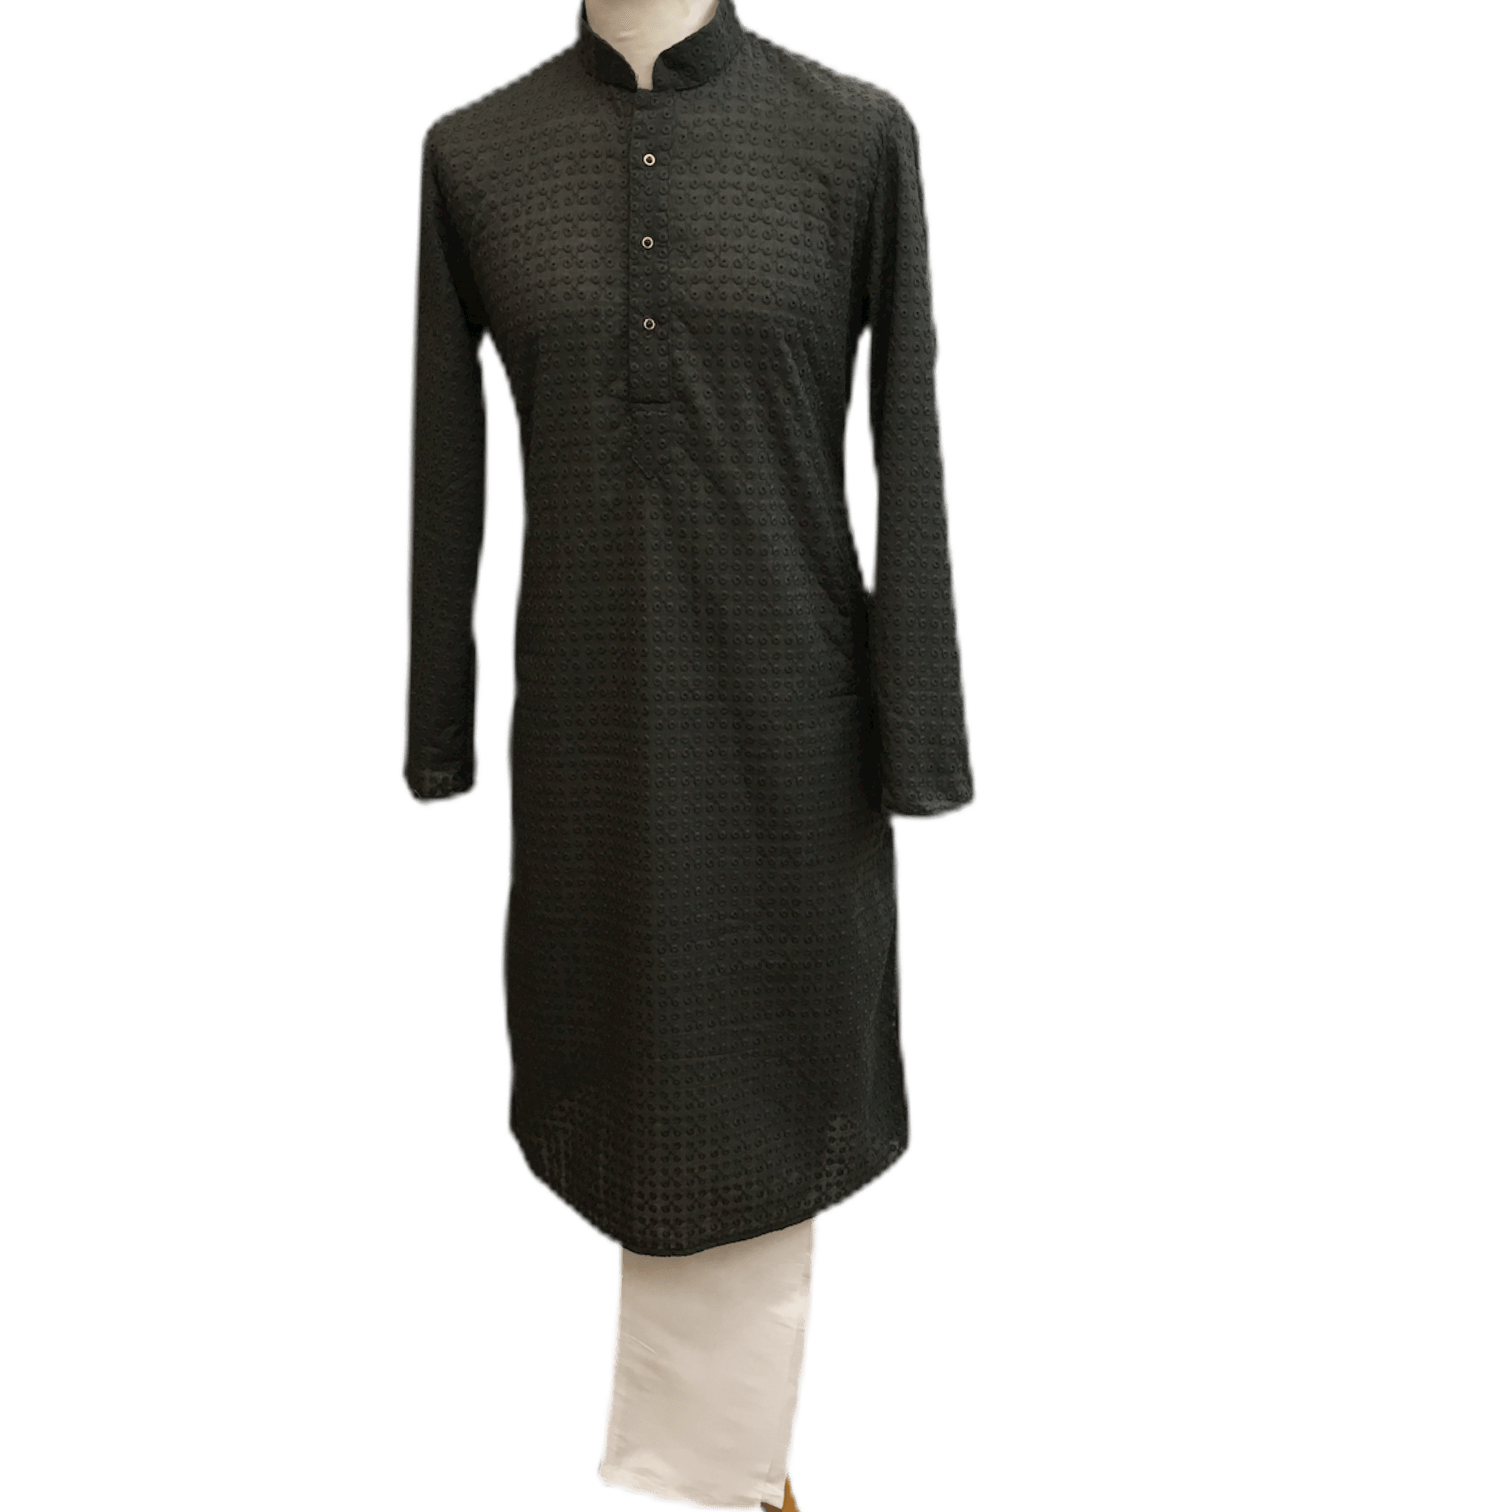 Mens Indian Kurta set in Dark Grey, for weddings, Bollywood Party ( with Draw stringed trousers) - Farari KR1219 - Prachy Creations